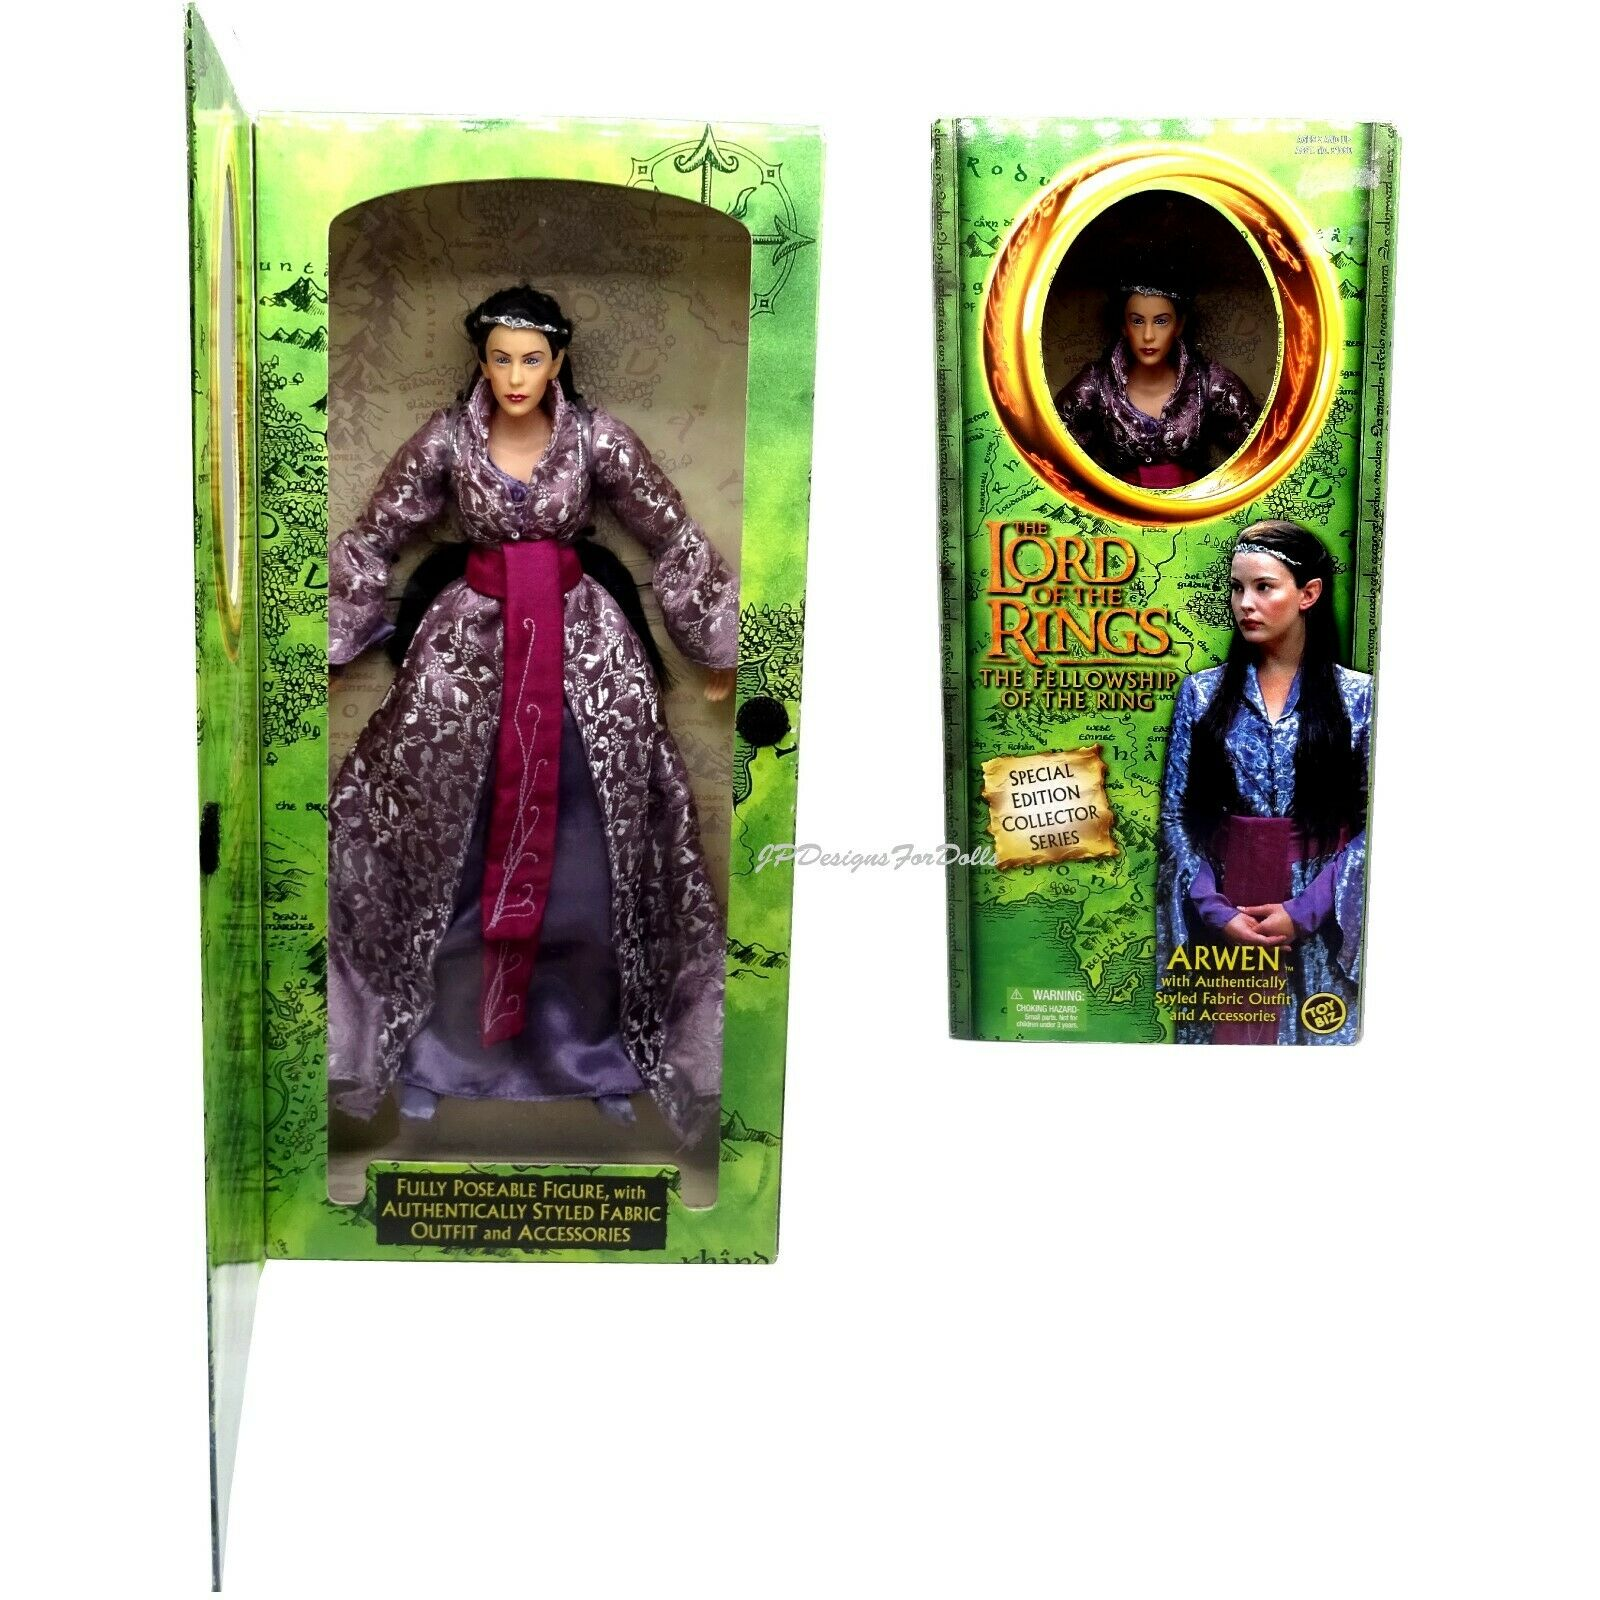 The Lord of The Ring Special Edition Arwen 12  Figure Doll Very Worn Box